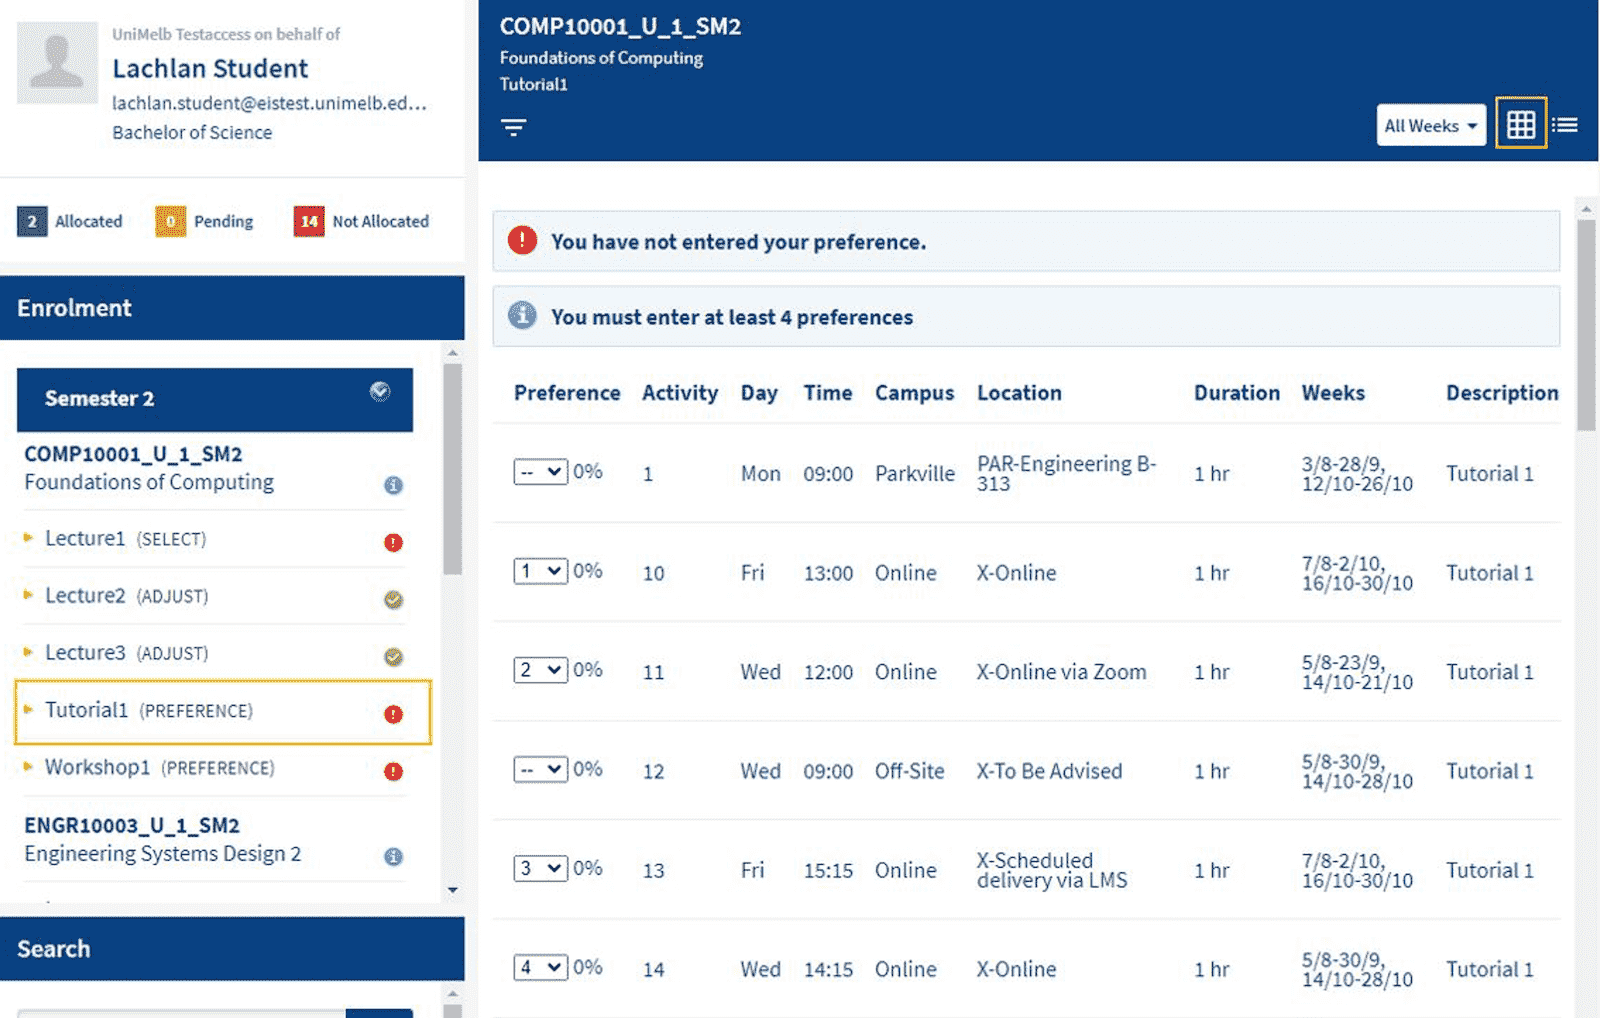 An image displaying a grid icon in the top right corner of the MyTimetable page